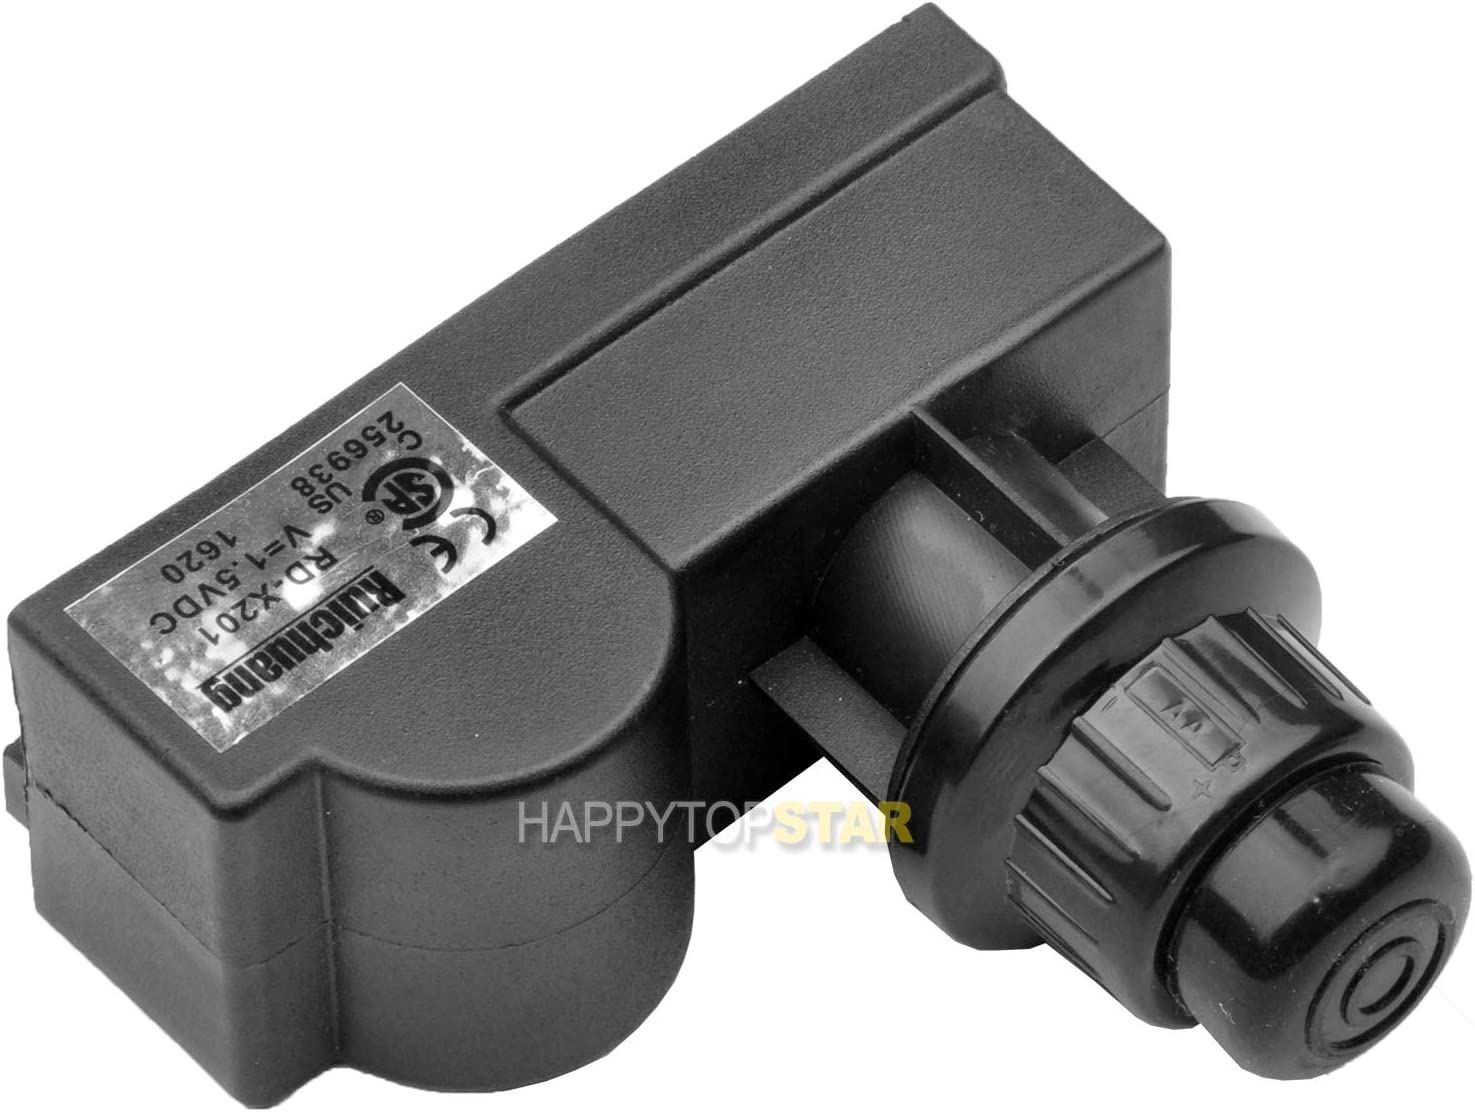 BBQ 03310 Spark Generator 1 Outlet AA Battery Push Button Igniter Ignitor Replacement BBQ Gas Grill Amana, Uniflame, Surefire, Charmglow, Charbroil, Centro, Brinkmann, BBQ Pro, Bakers, Chefs Solaire,